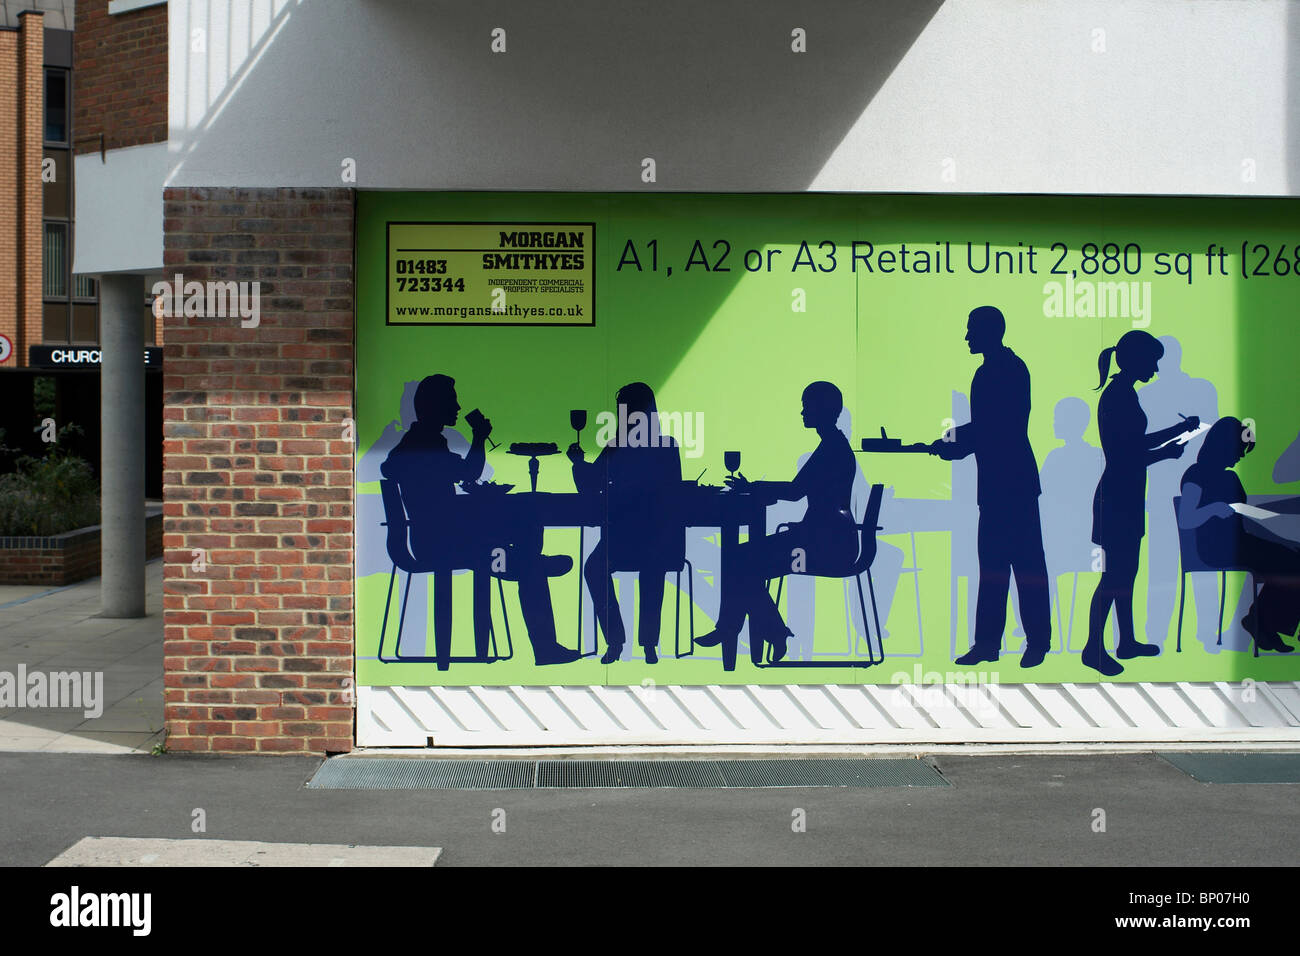 Retail unit advertising Woking Surrey England UK A1 A2 A3 - Stock Image